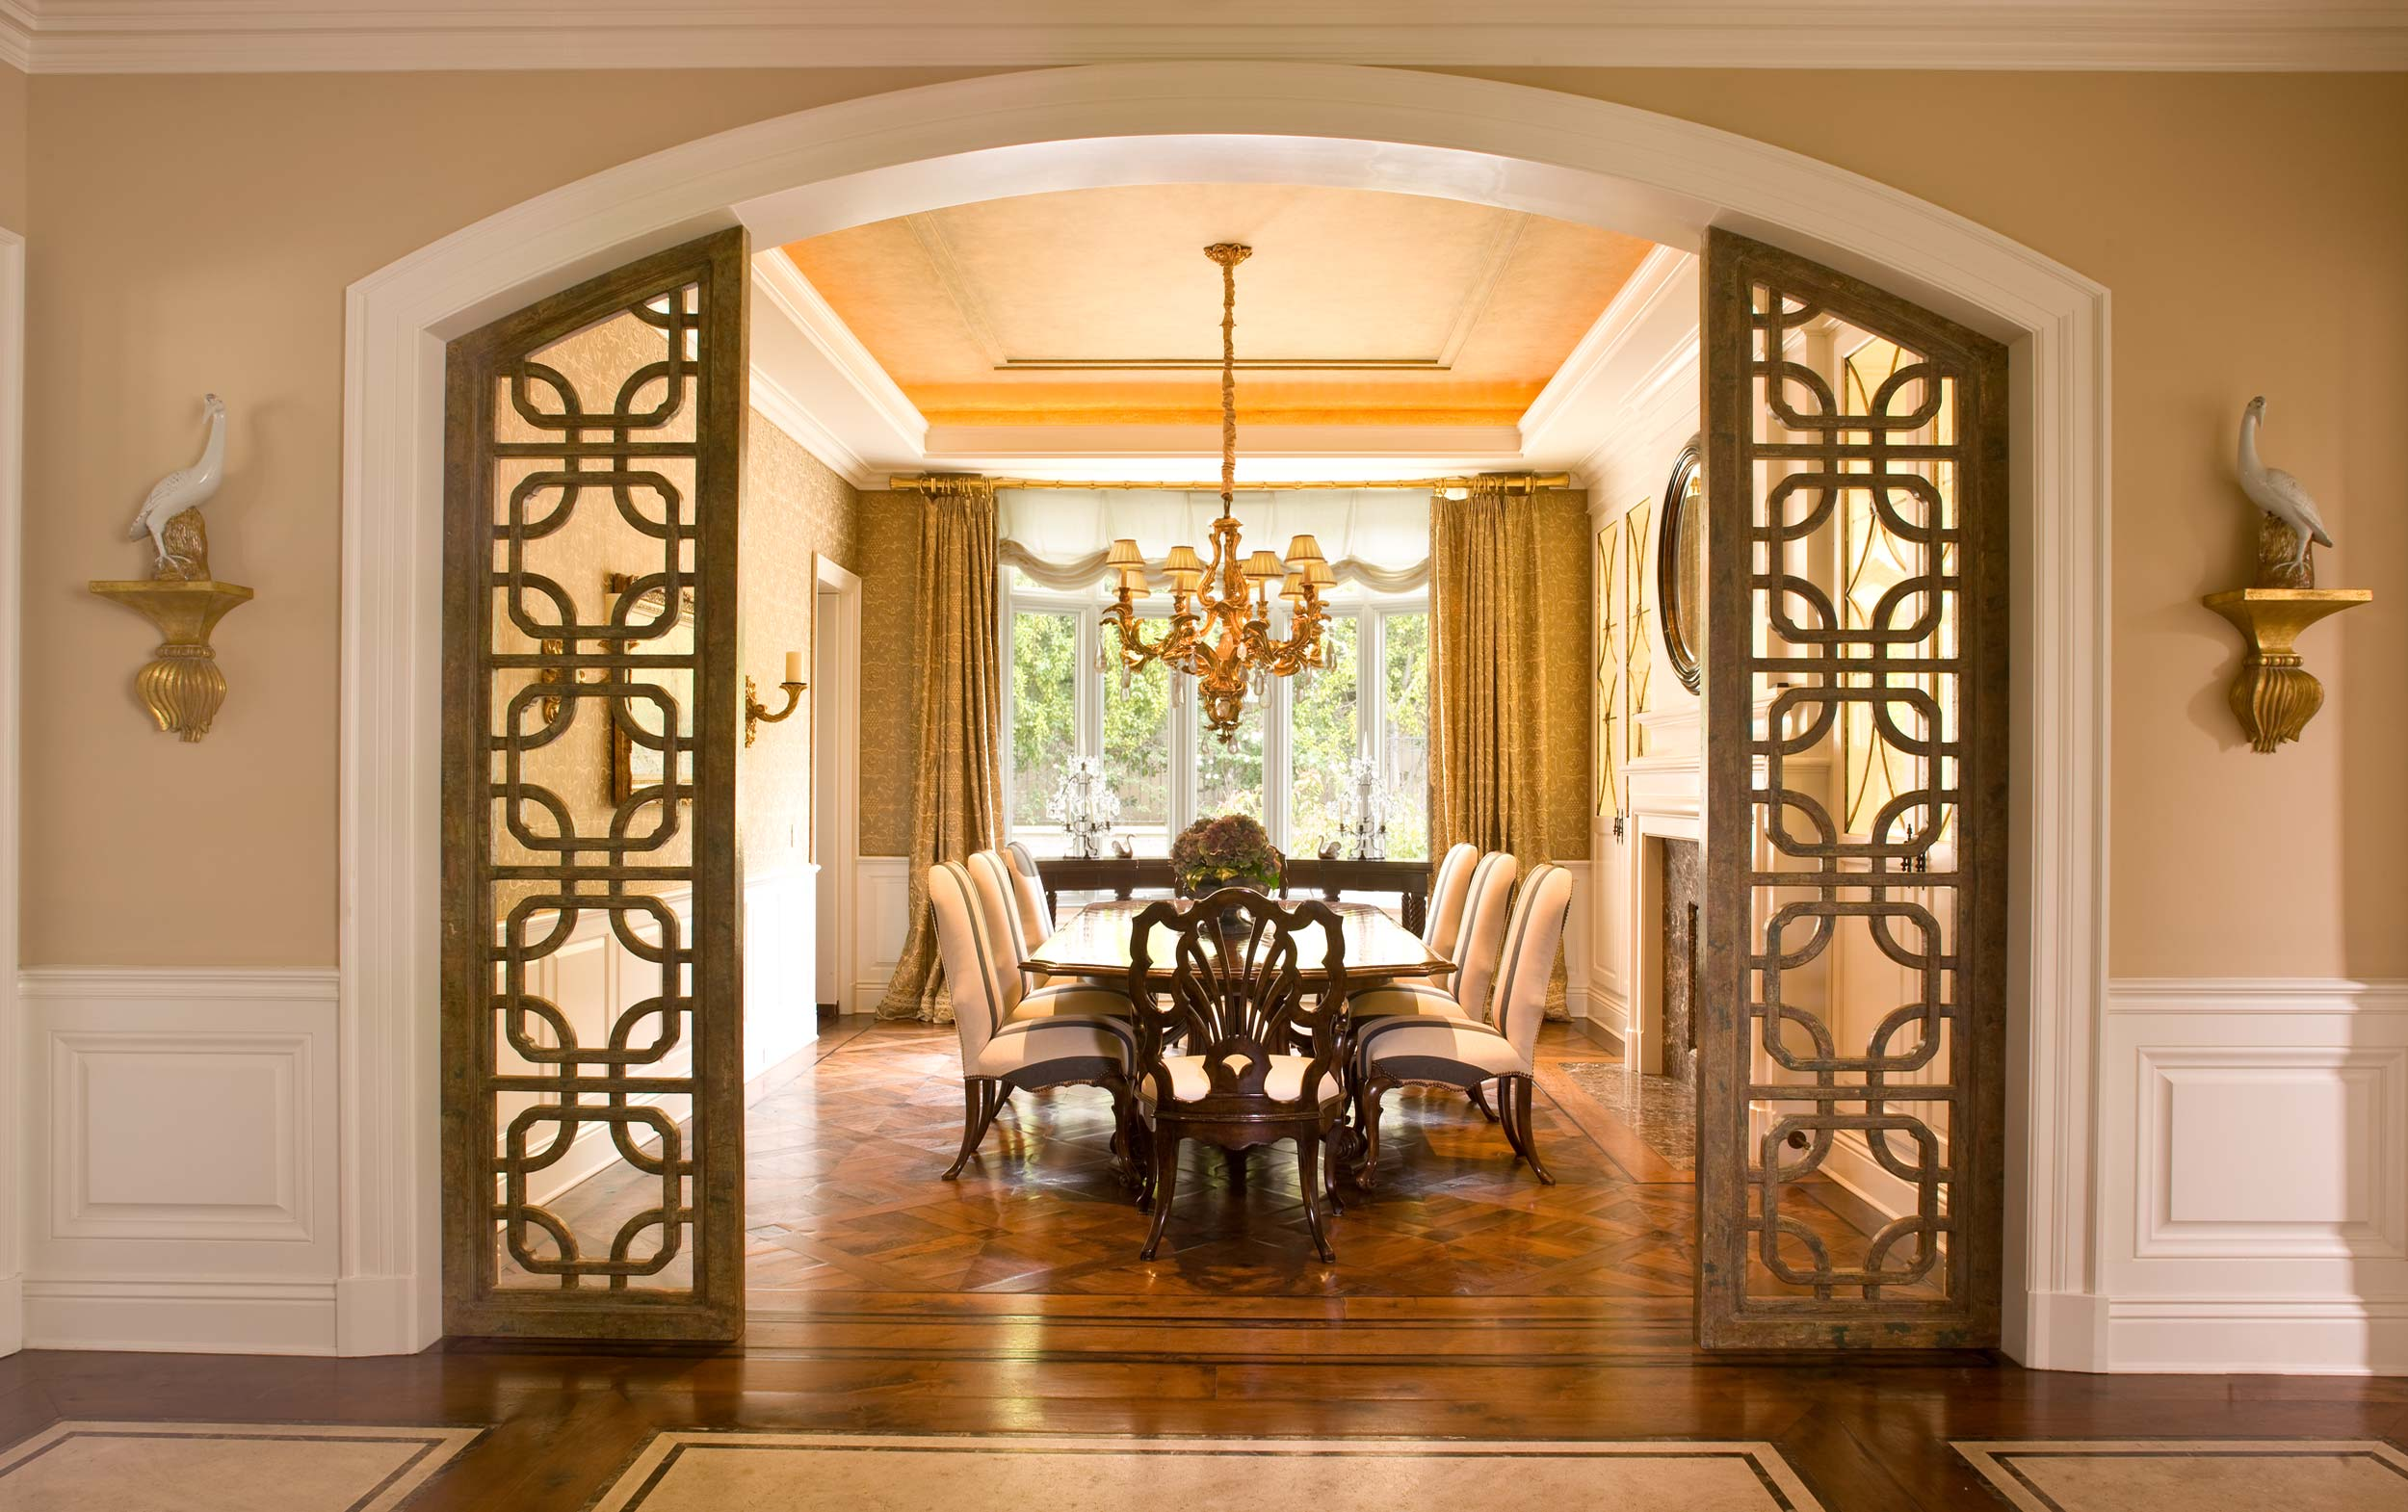 Formal Dining Room with a grand entrance